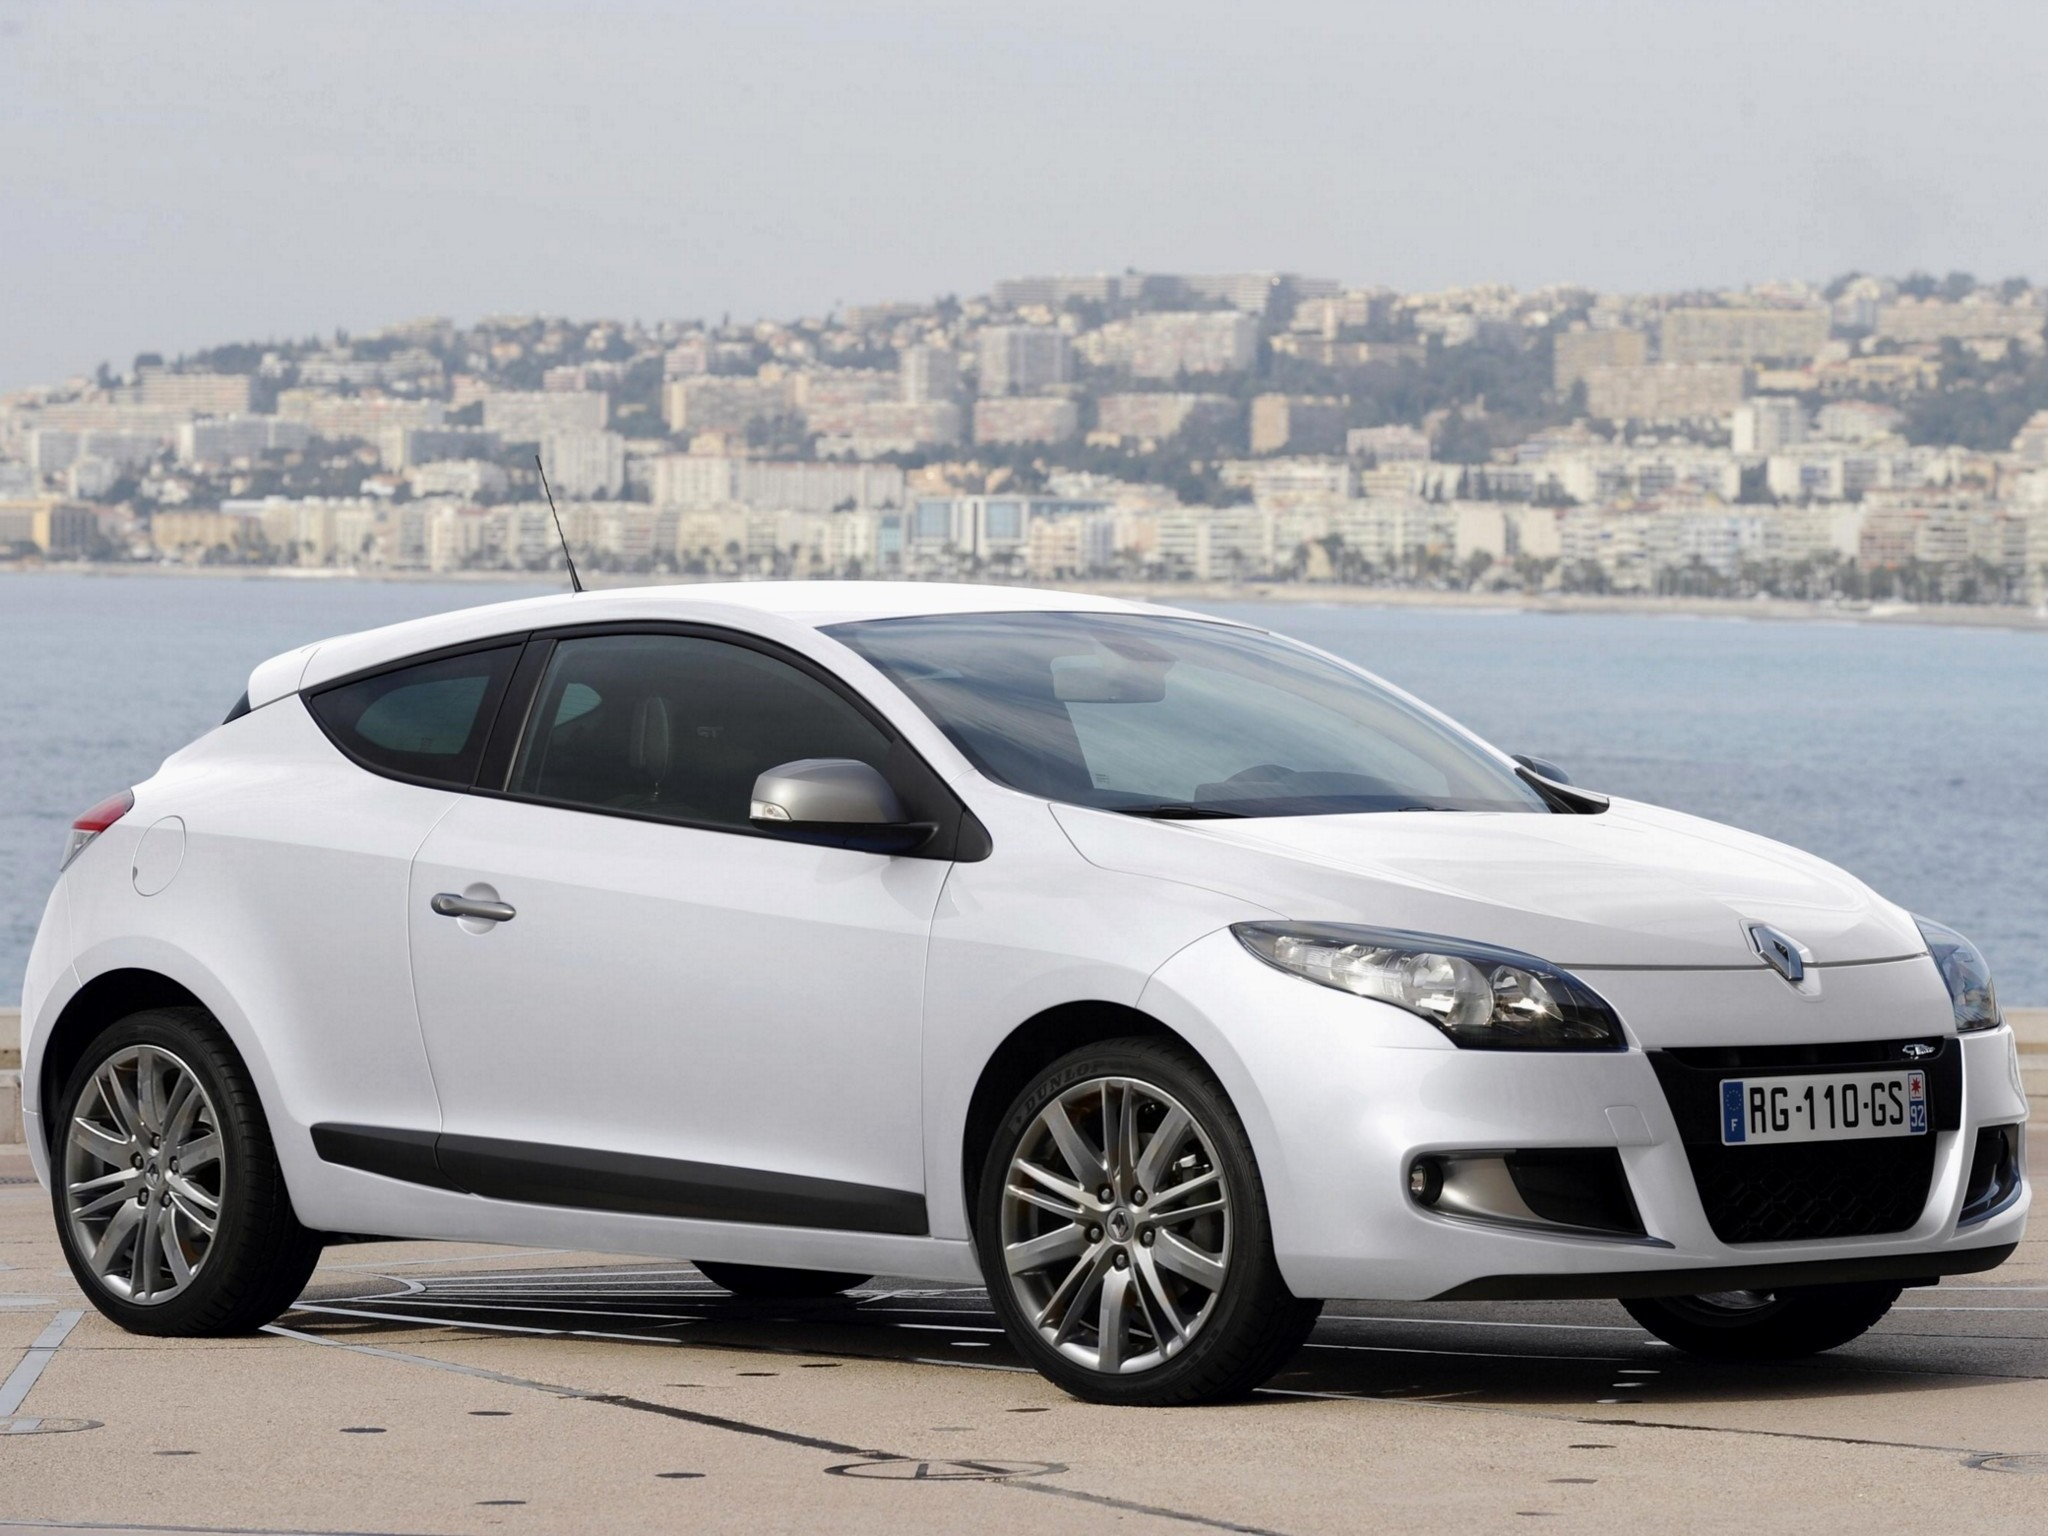 renault megane gt 3 doors specs 2010 2011 2012 2013 autoevolution. Black Bedroom Furniture Sets. Home Design Ideas